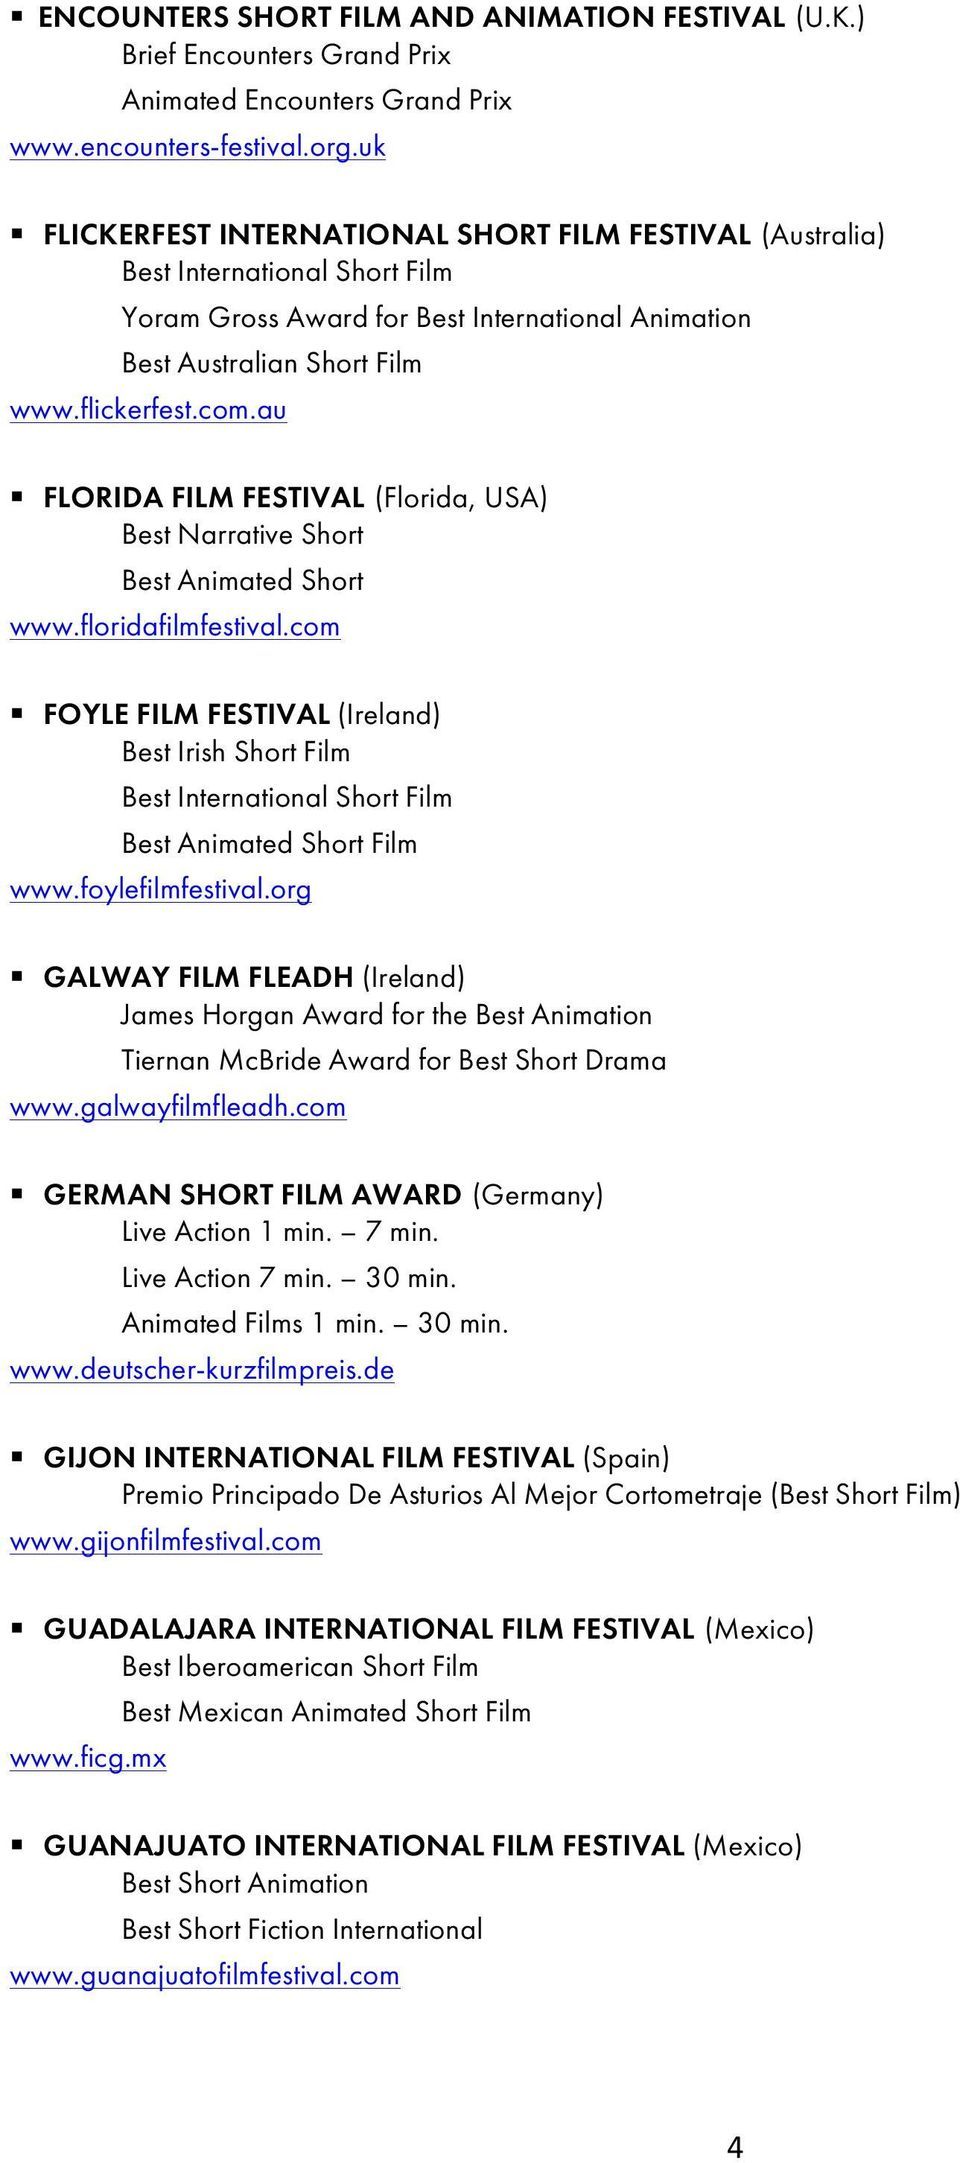 au FLORIDA FILM FESTIVAL (Florida, USA) www.floridafilmfestival.com FOYLE FILM FESTIVAL (Ireland) Best Irish Short Film Best International Short Film Film www.foylefilmfestival.